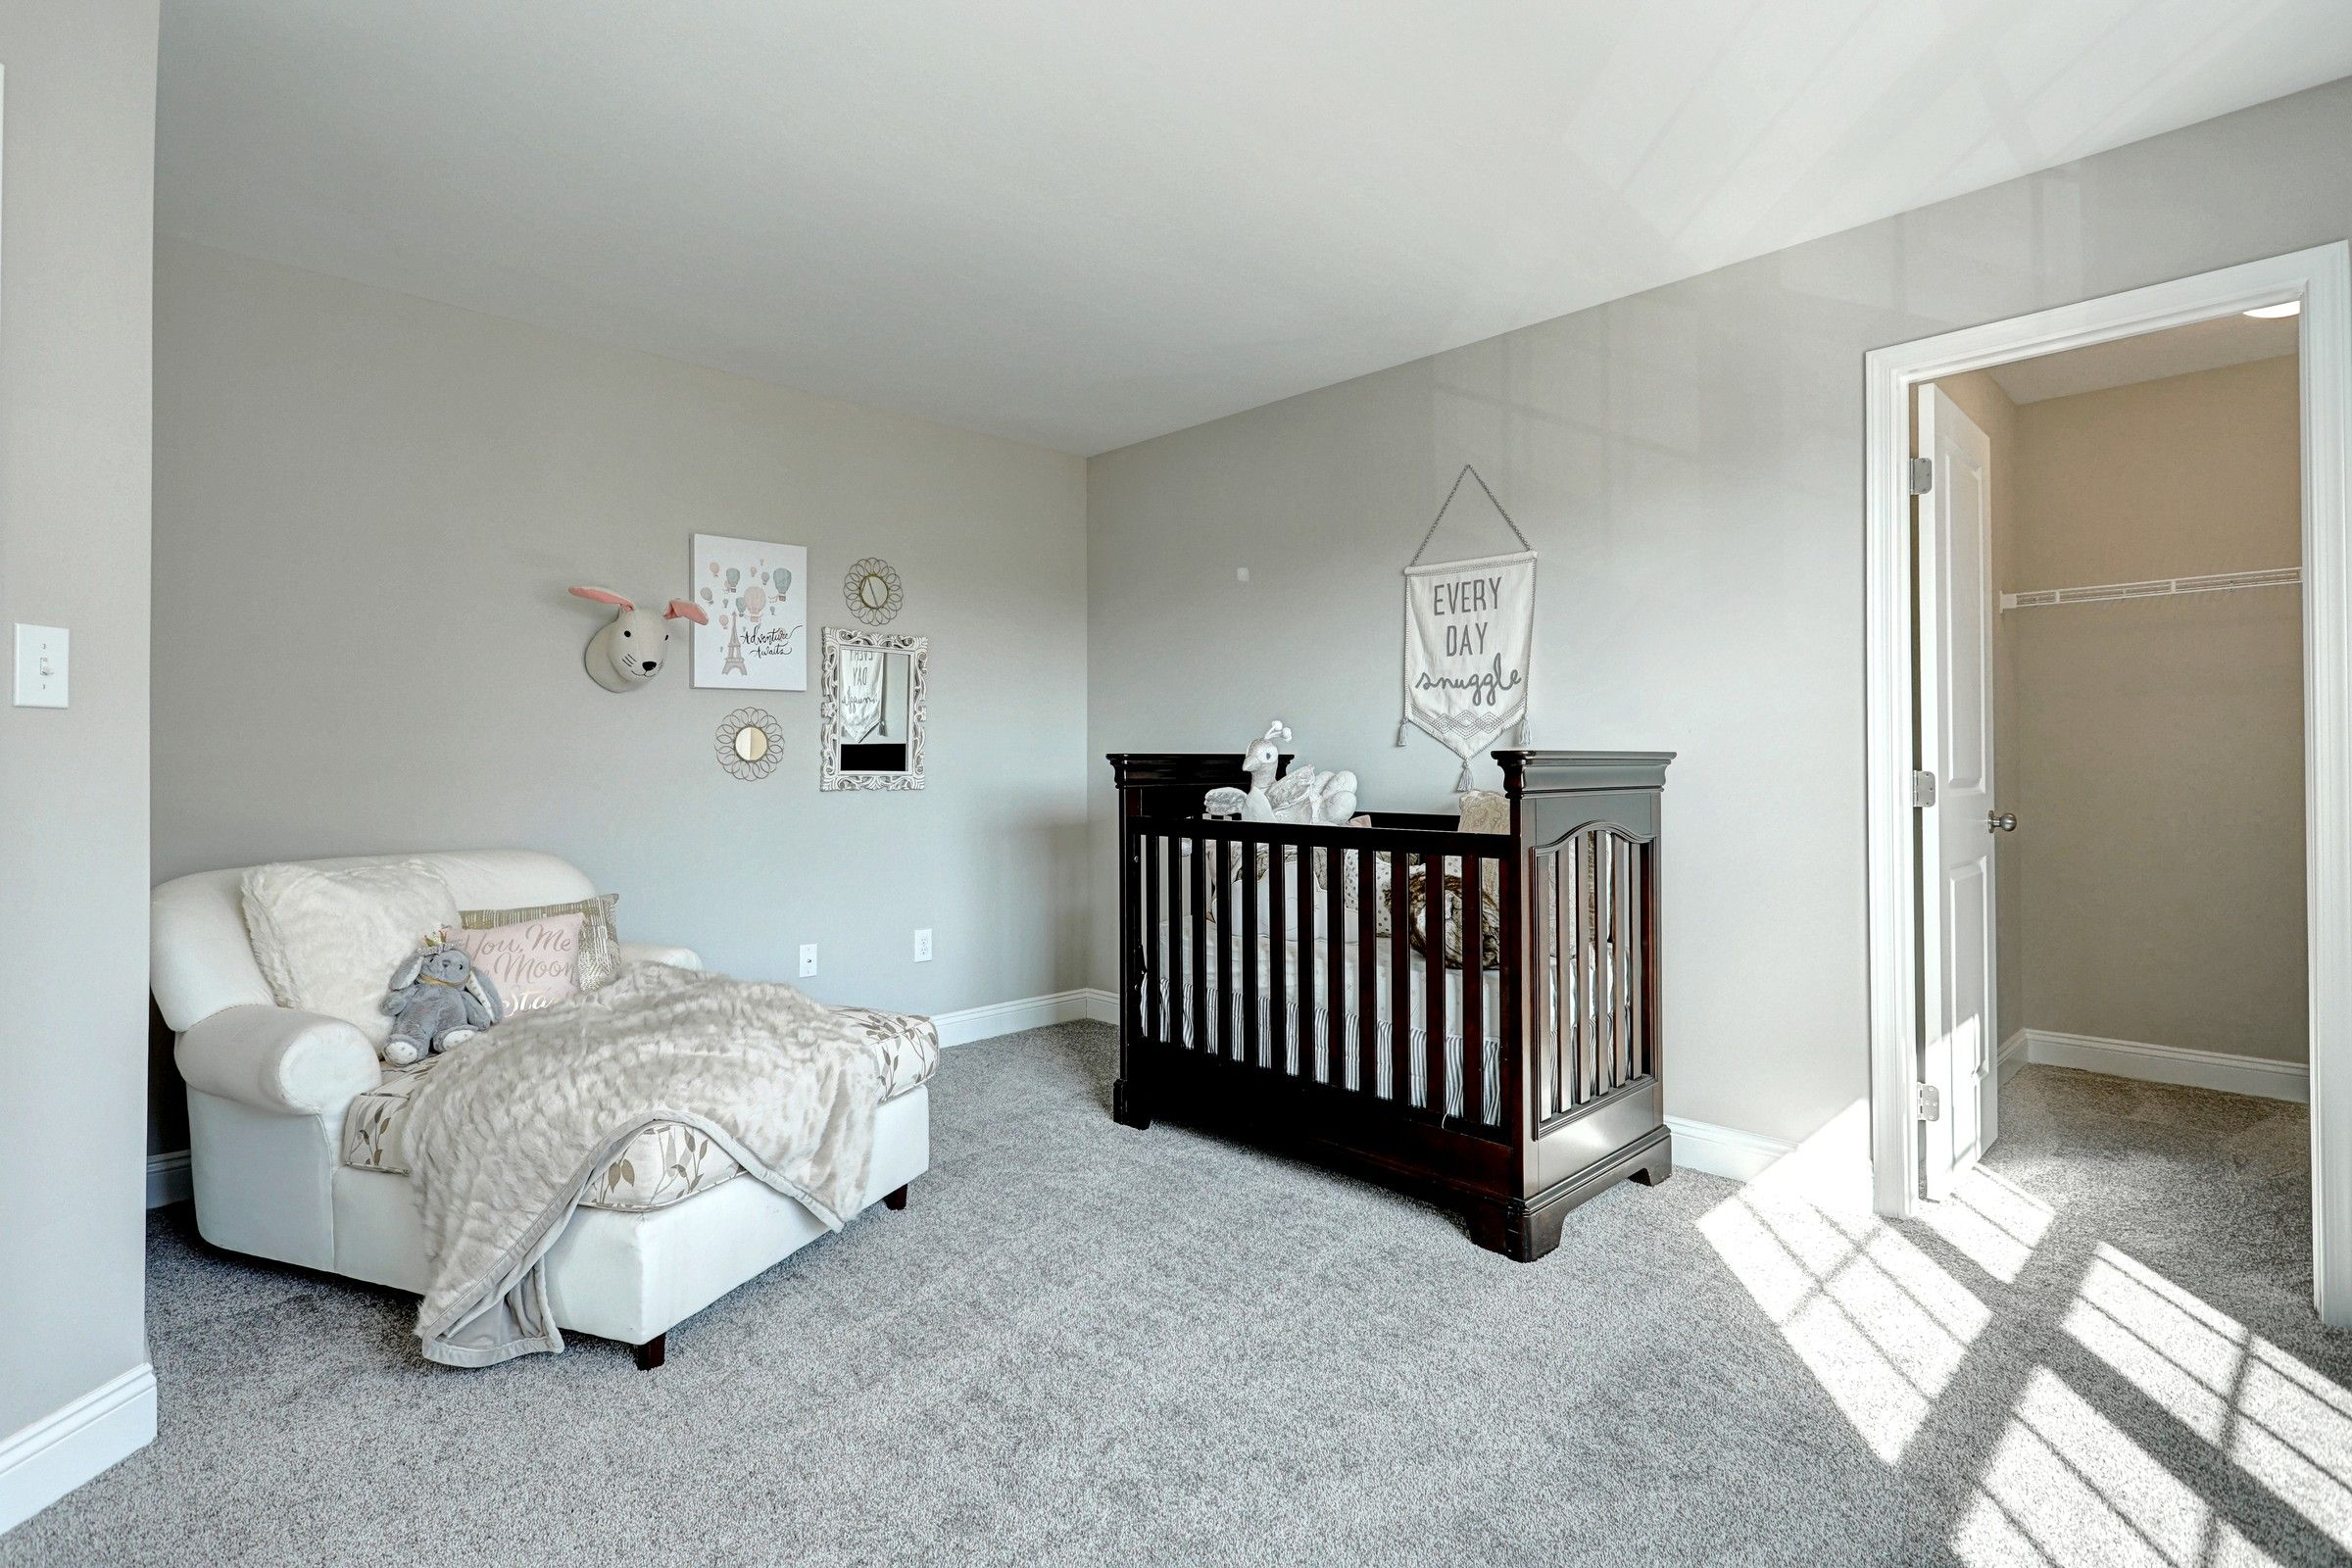 Bedroom featured in the Covington Traditional By Keystone Custom Homes in Philadelphia, PA